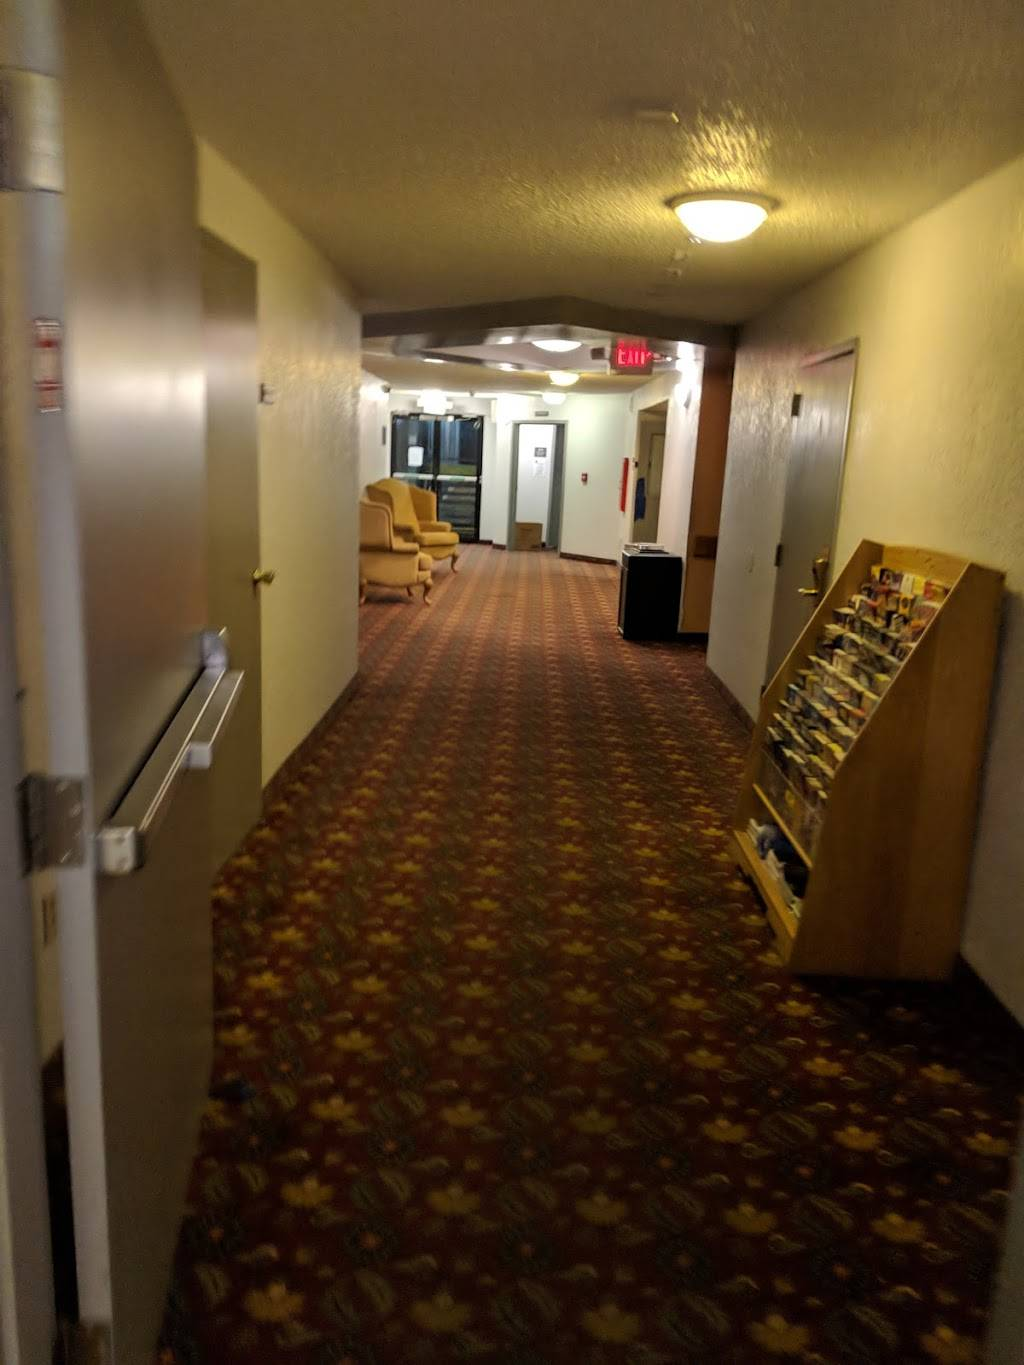 Pan American Inn & Suites - lodging  | Photo 1 of 6 | Address: 7620 Pan American Fwy, Albuquerque, NM 87109, USA | Phone: (505) 859-4657